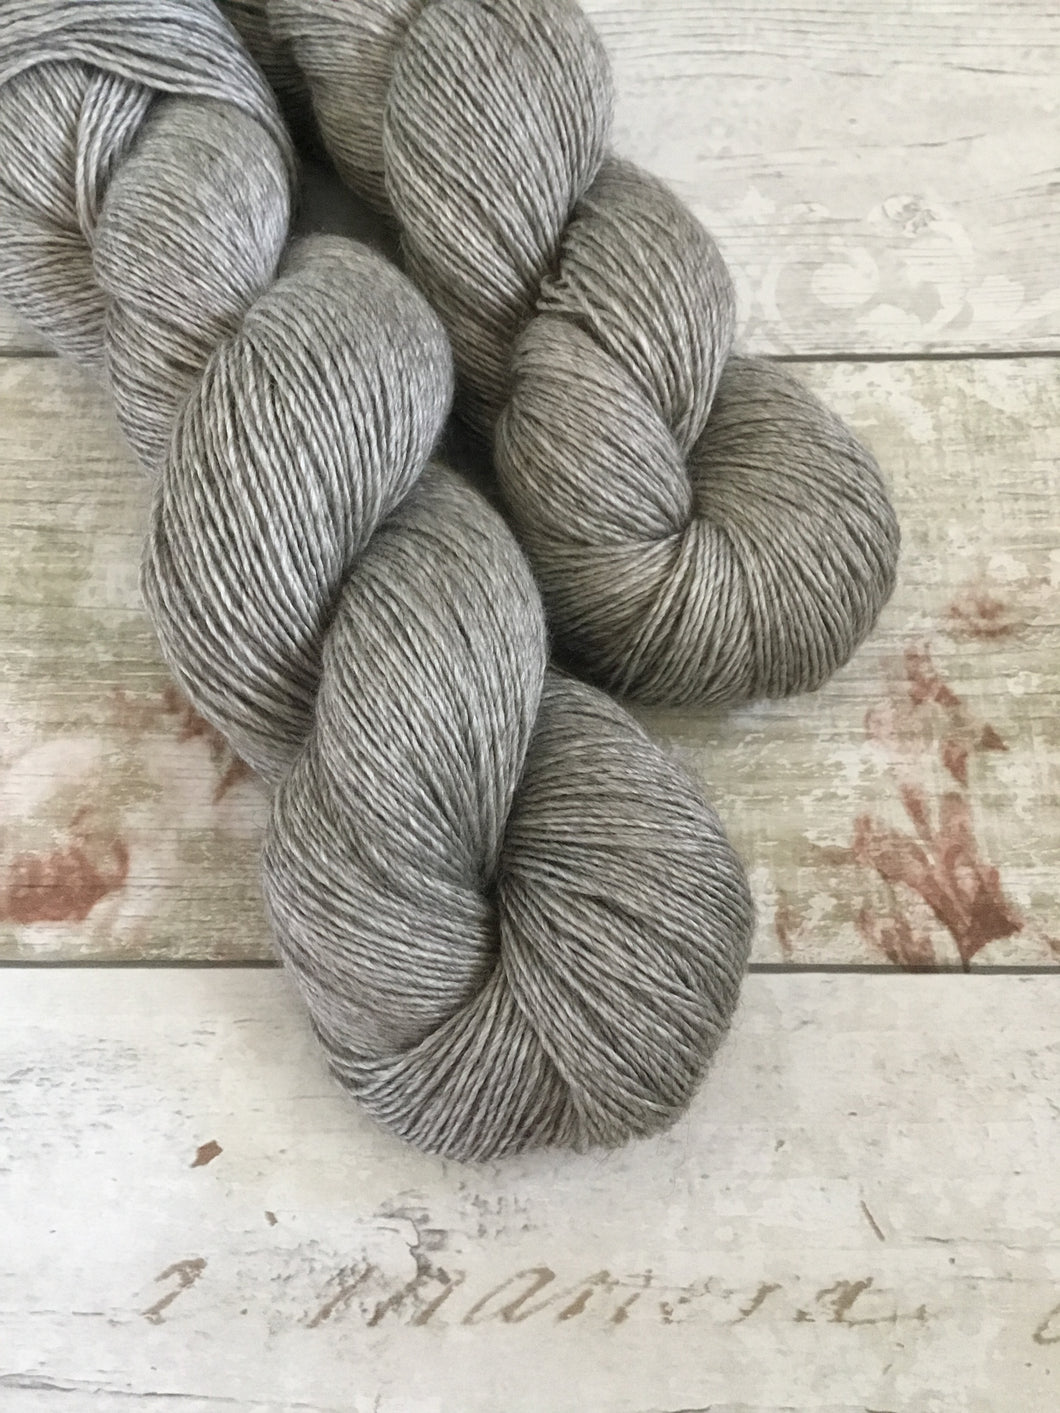 Silky Yak Singles - 4ply - Natural